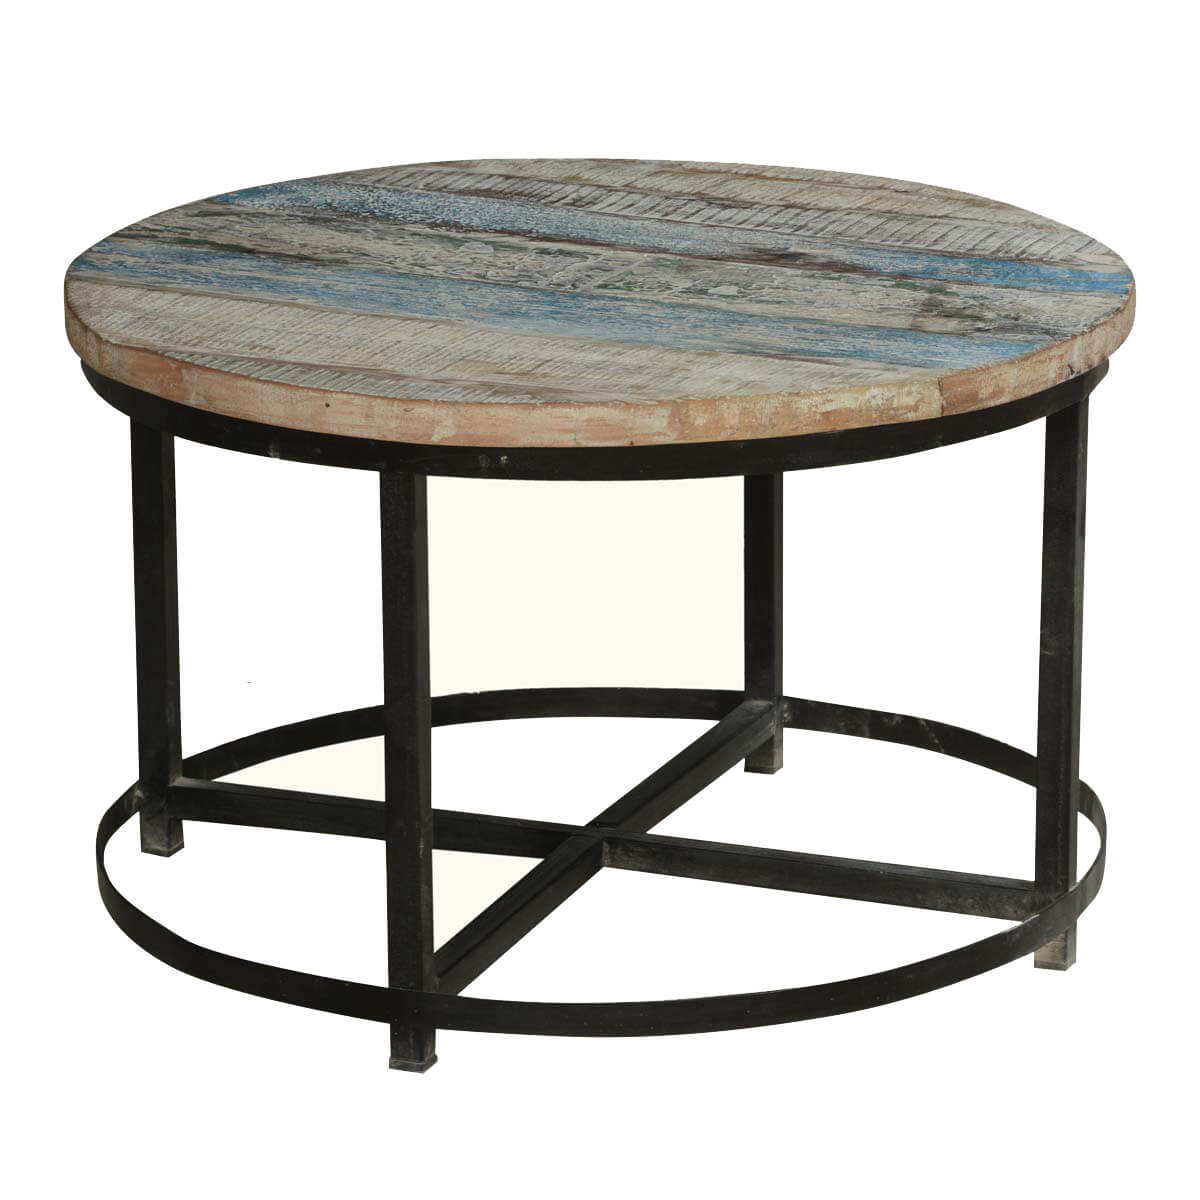 Industrial Style Coffee Table With Reclaimed Wood Top